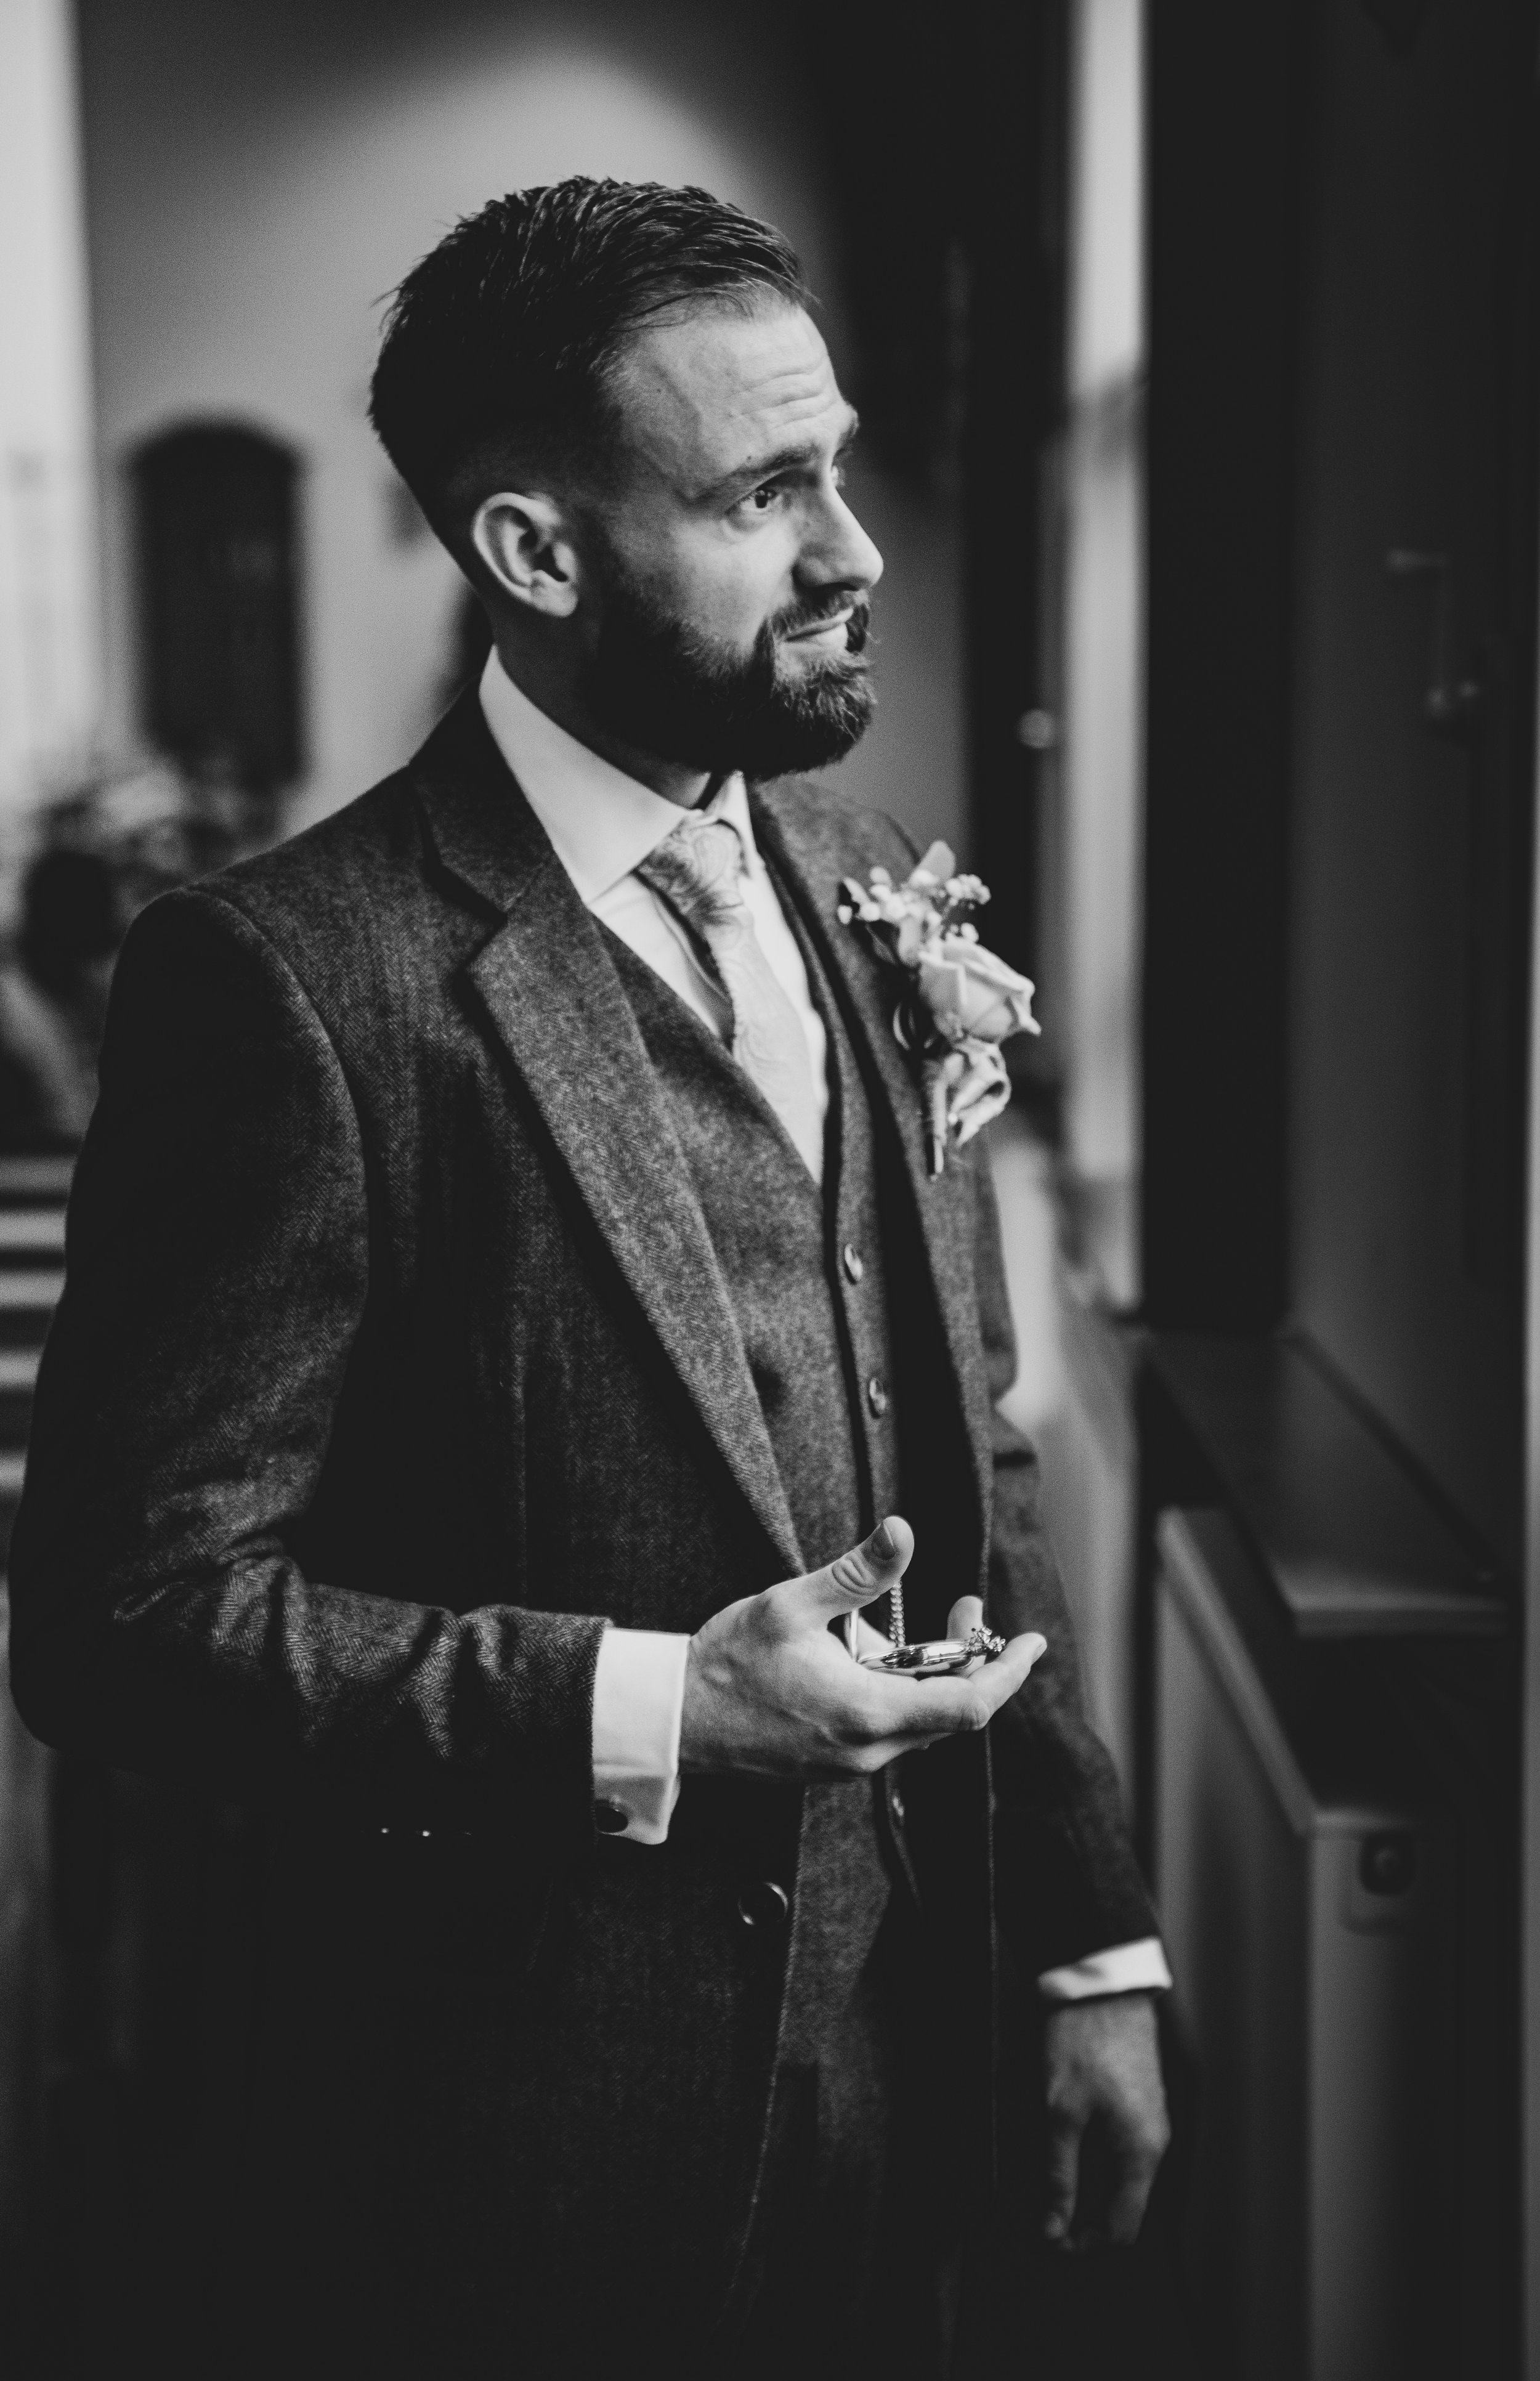 bedfordshire-london-wedding-photographer-videographer-19